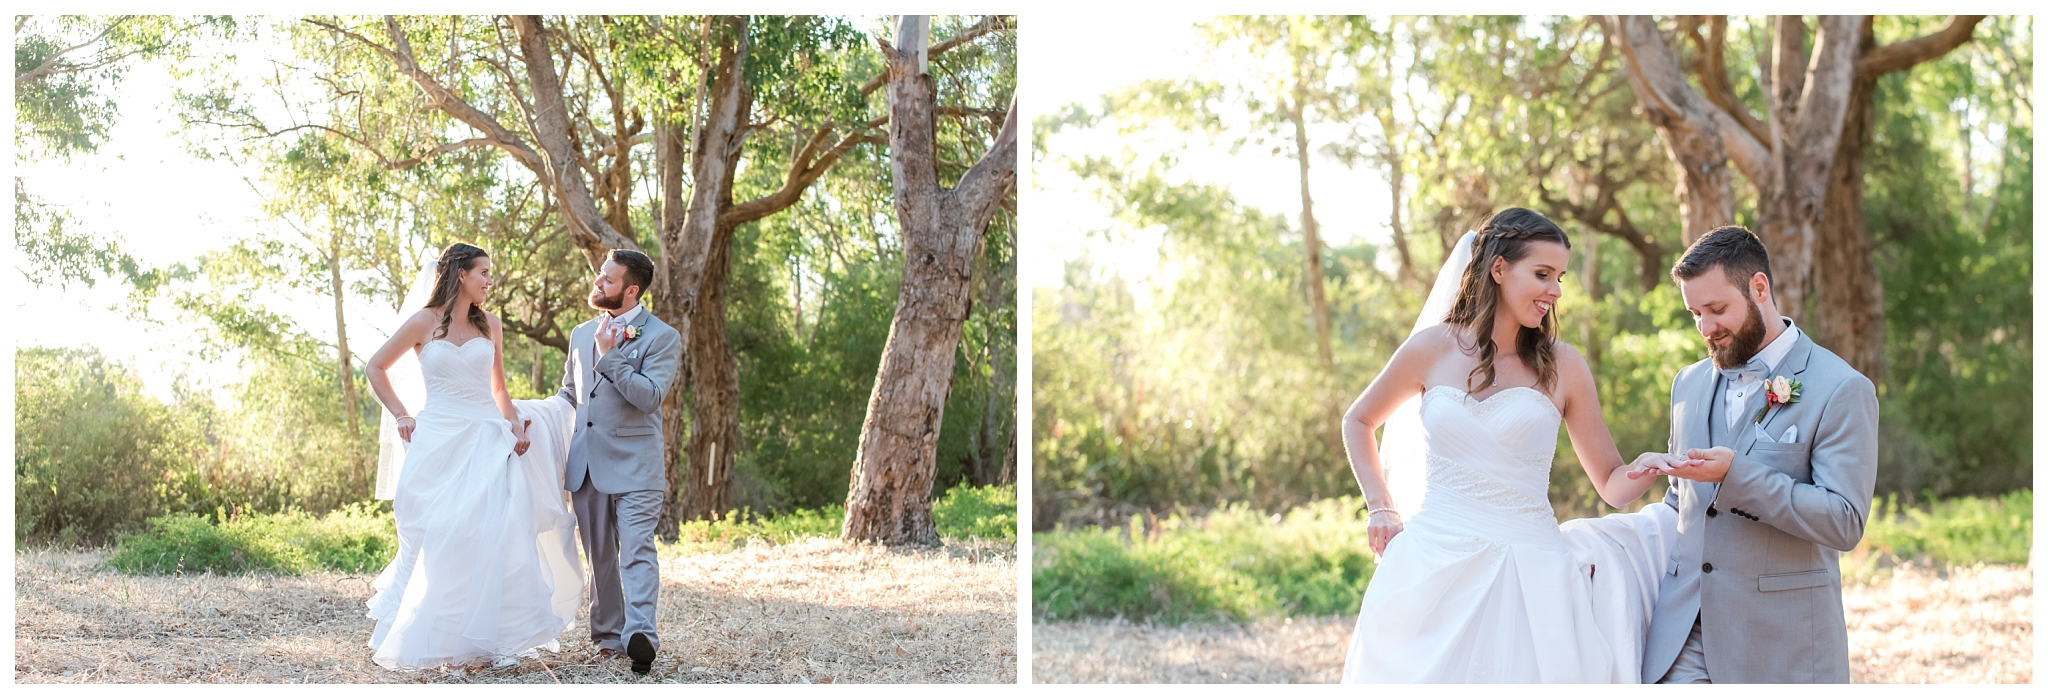 Yanchep Wedding Bride & Groom